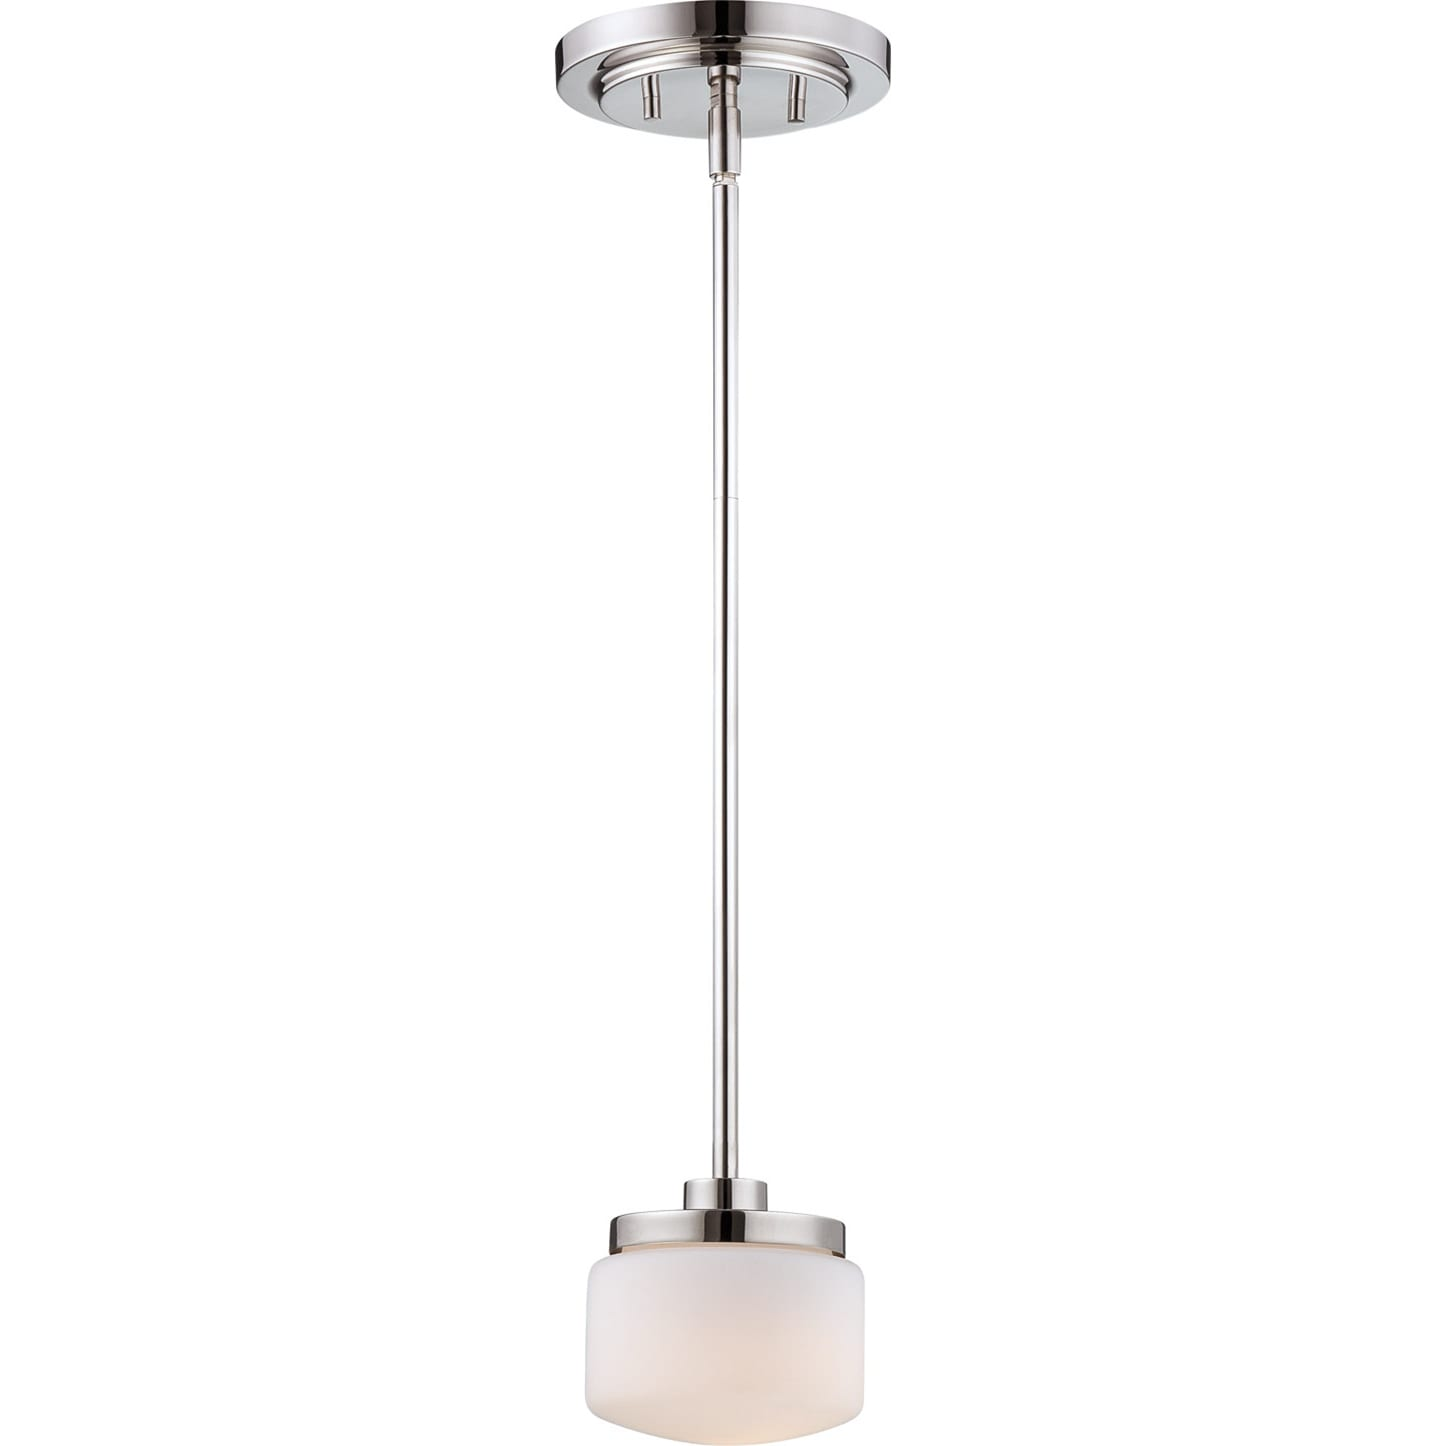 Nuvo 'Austin' 1-light Polished Nickel Mini Pendant